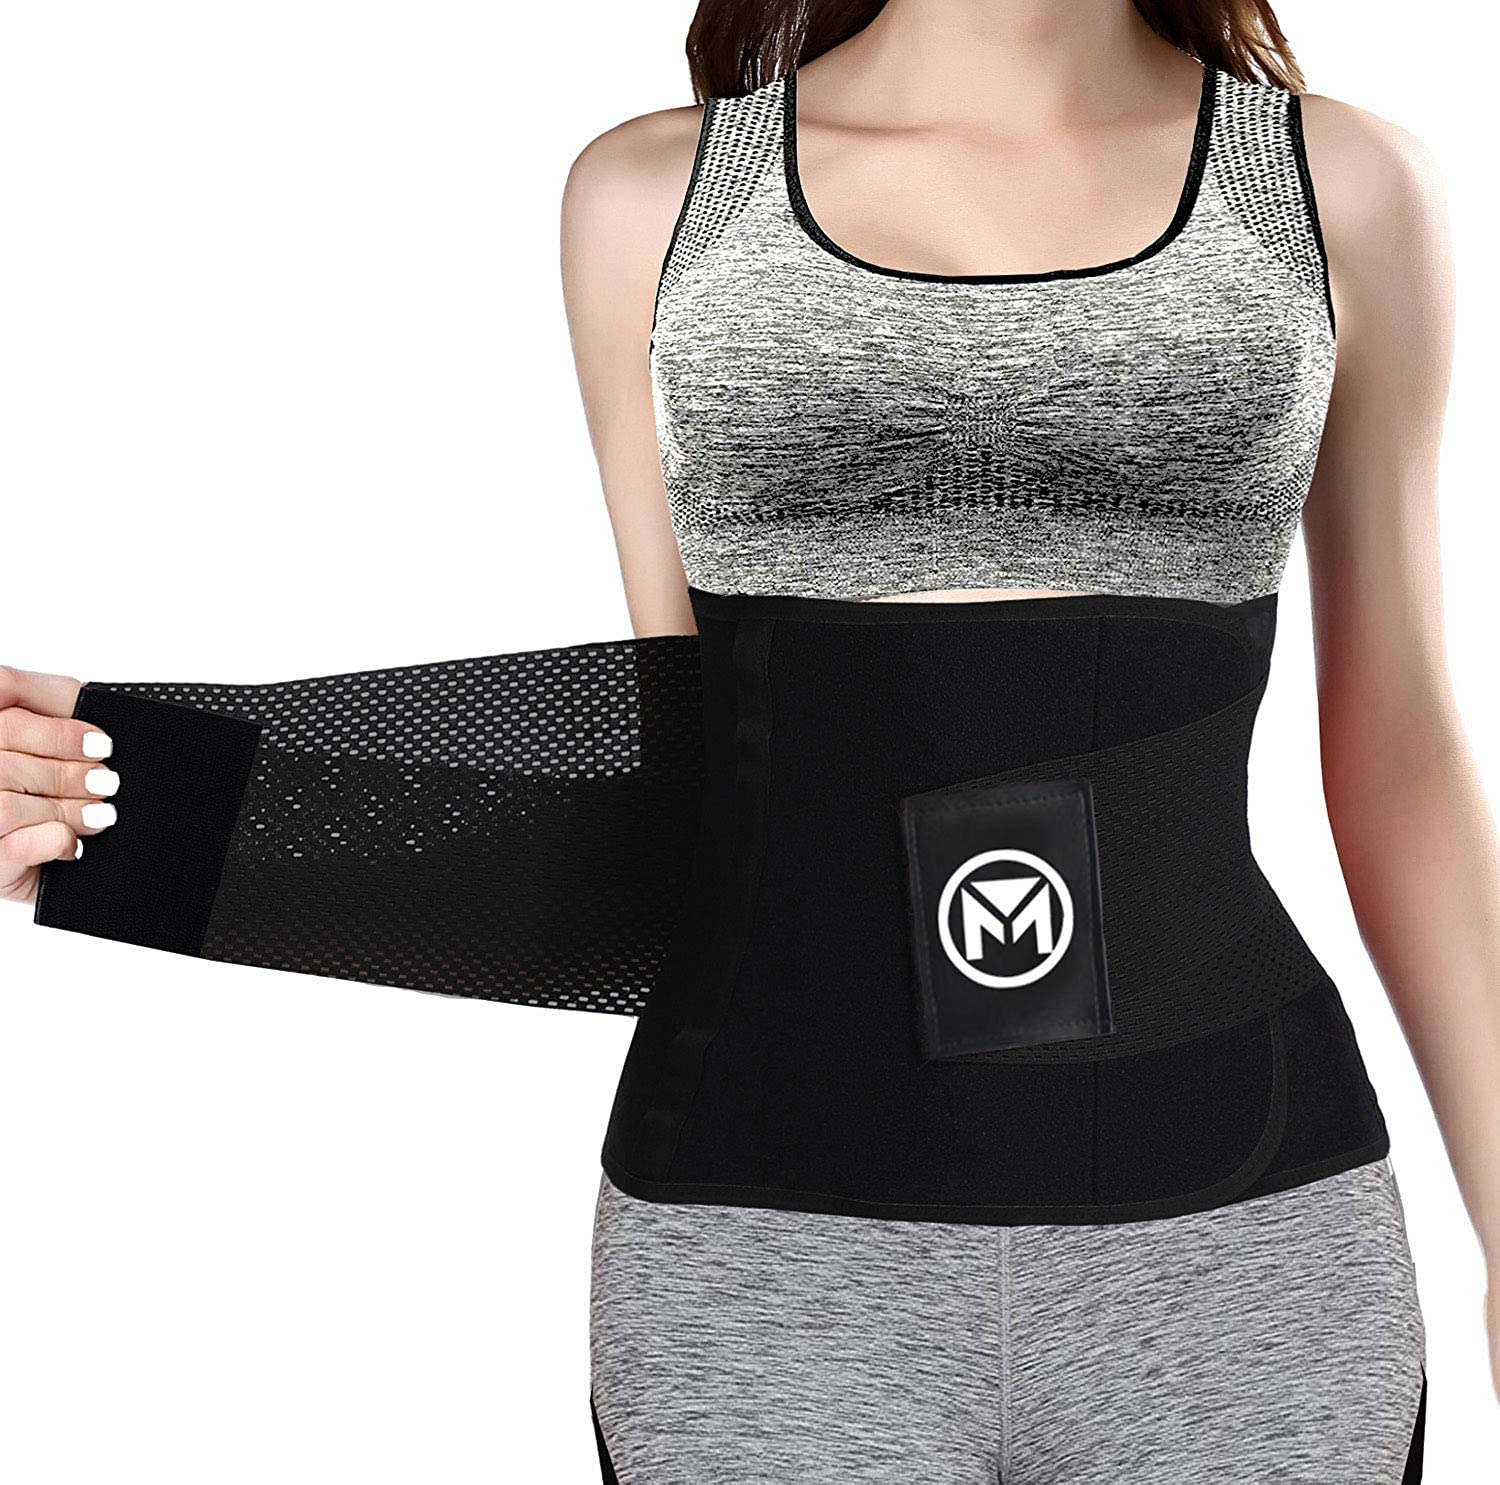 Moolida Waist Topics on TV Trainer Belt Limited time sale for Loss Trimmer W Weight Women